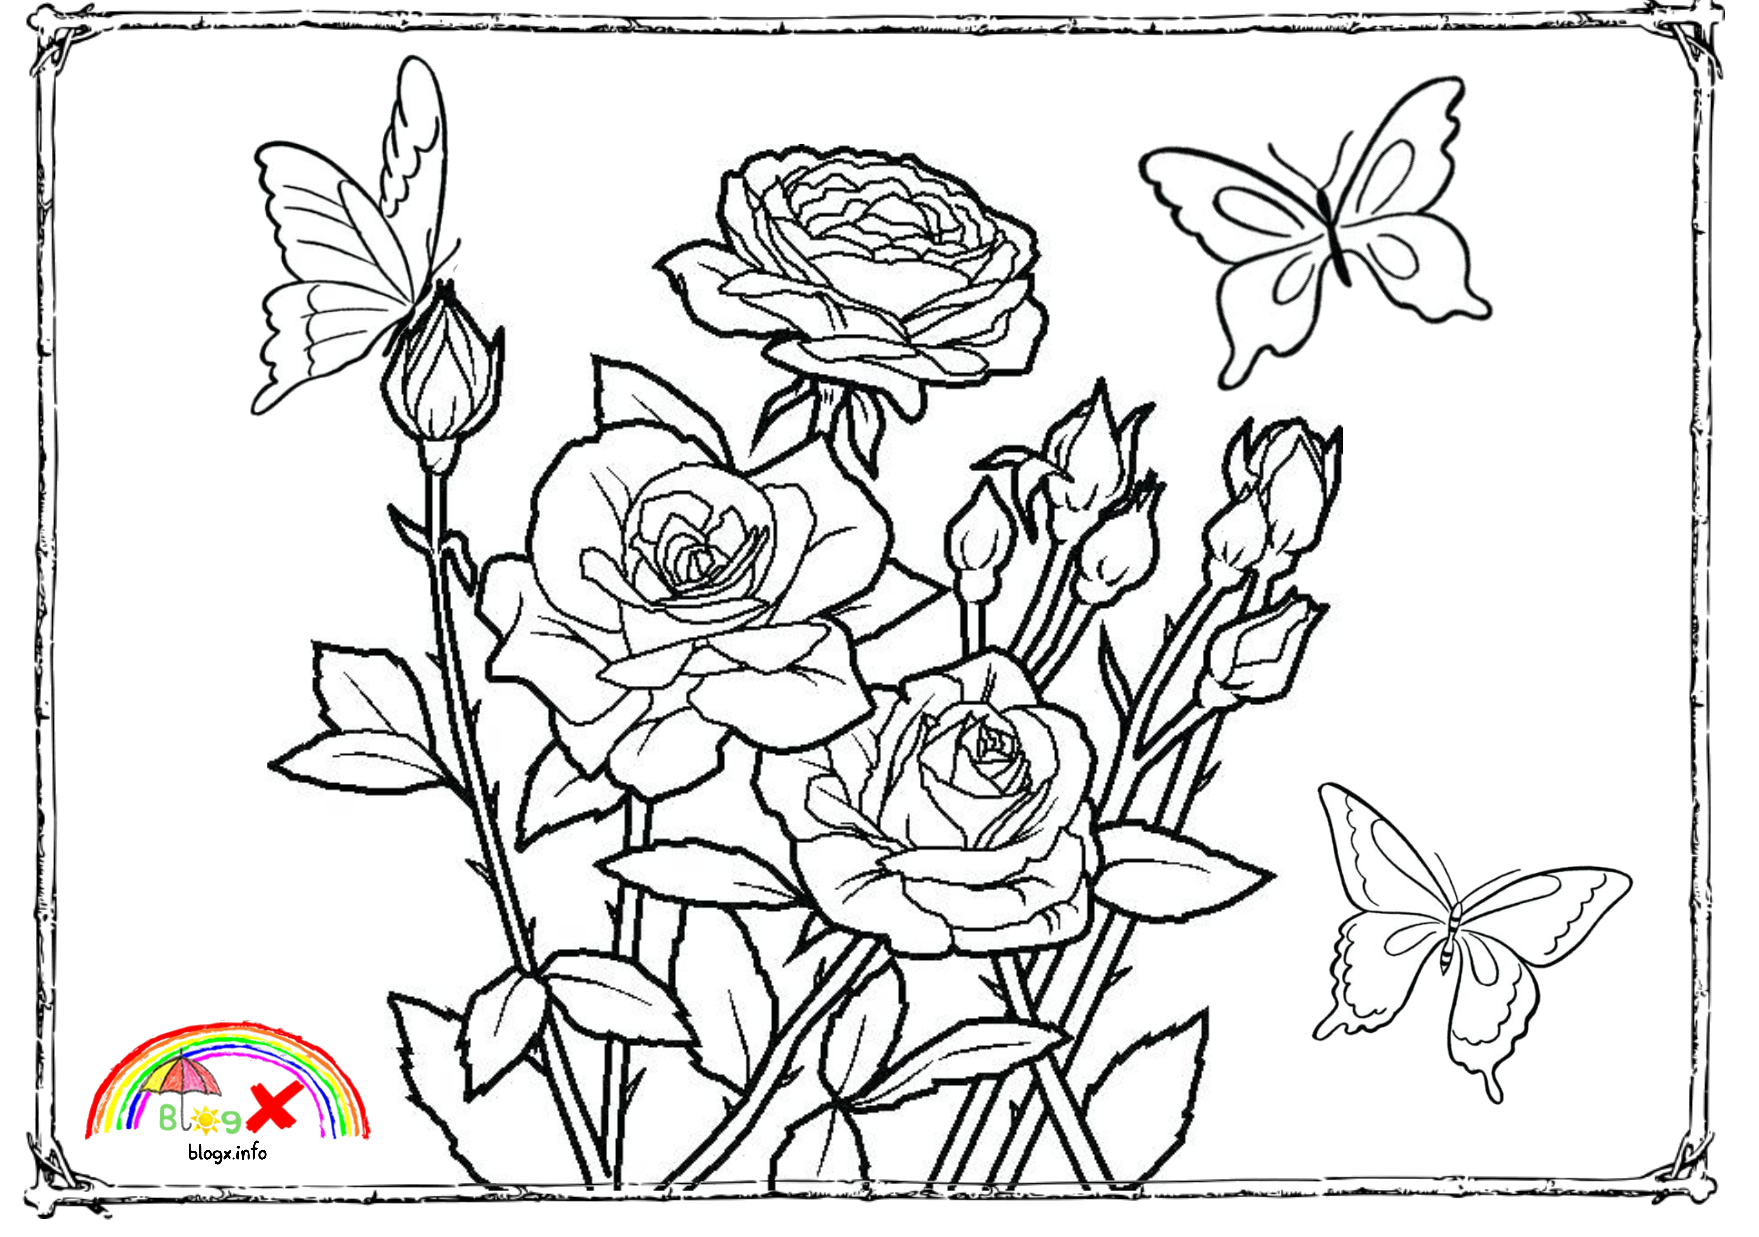 Pin By Ellok Network On Coloring Butterfly Coloring Page Flower Coloring Pages Coloring Pages [ 1237 x 1759 Pixel ]